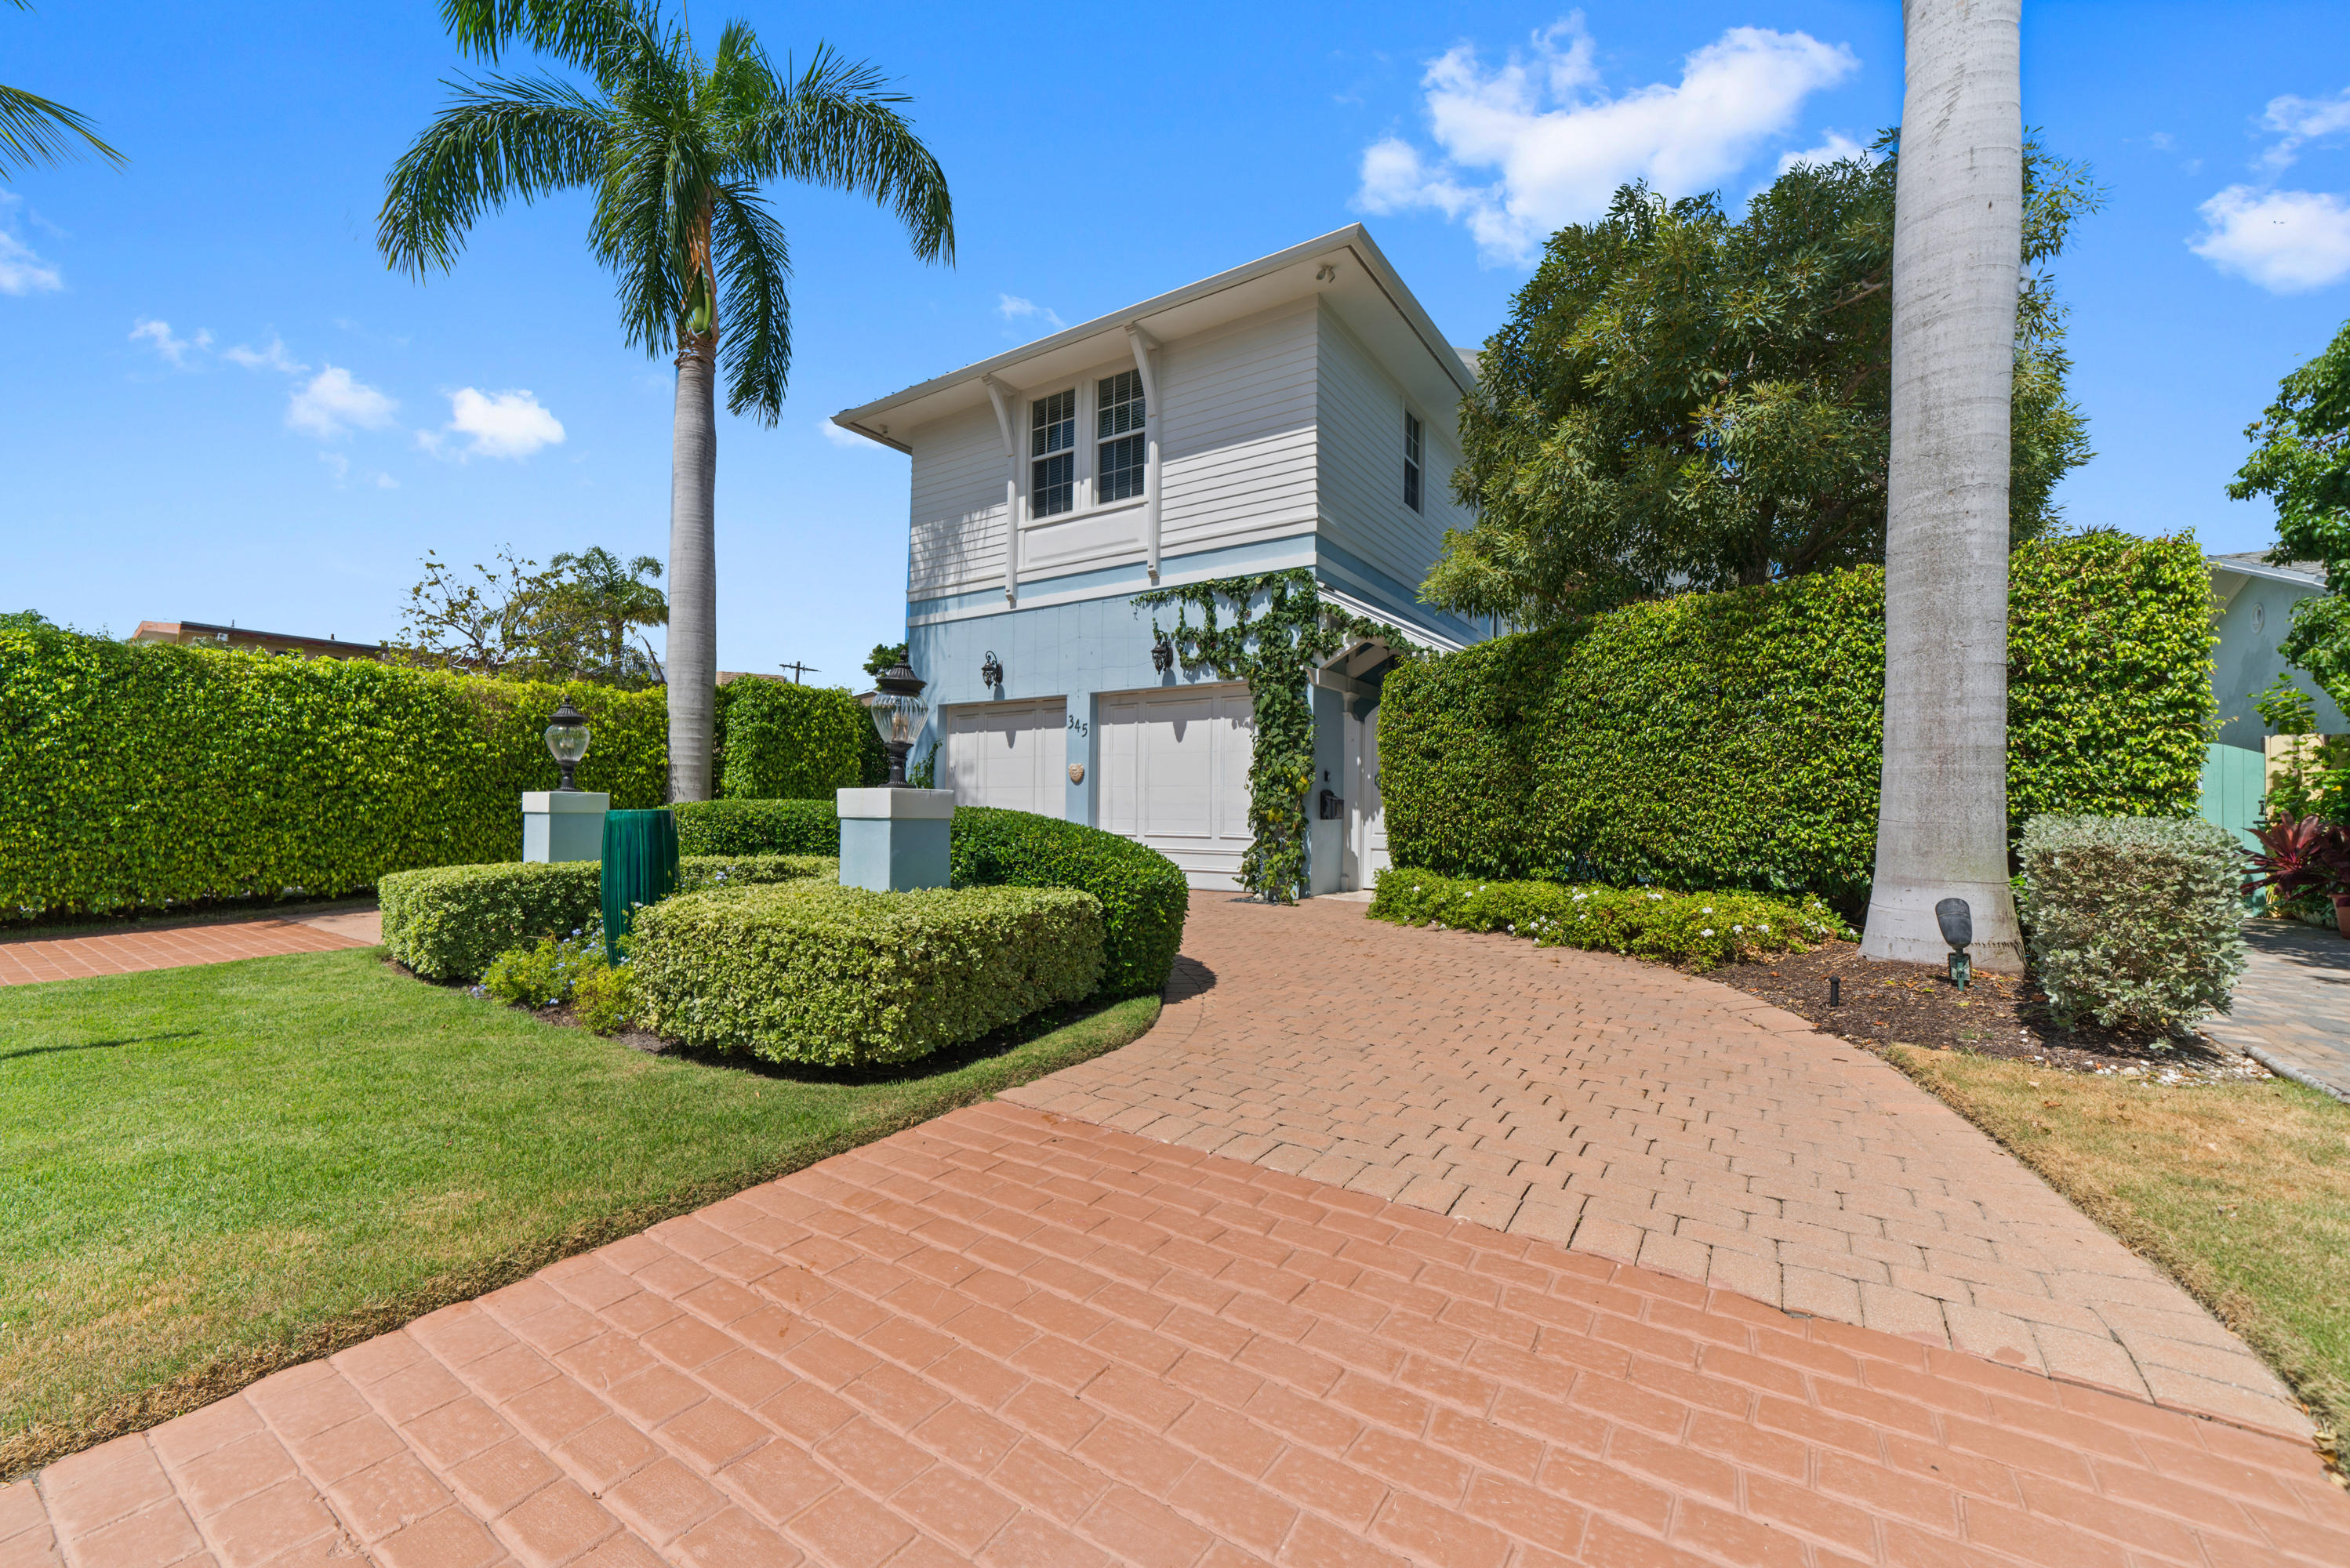 Home for sale in Soso West Palm Beach Florida